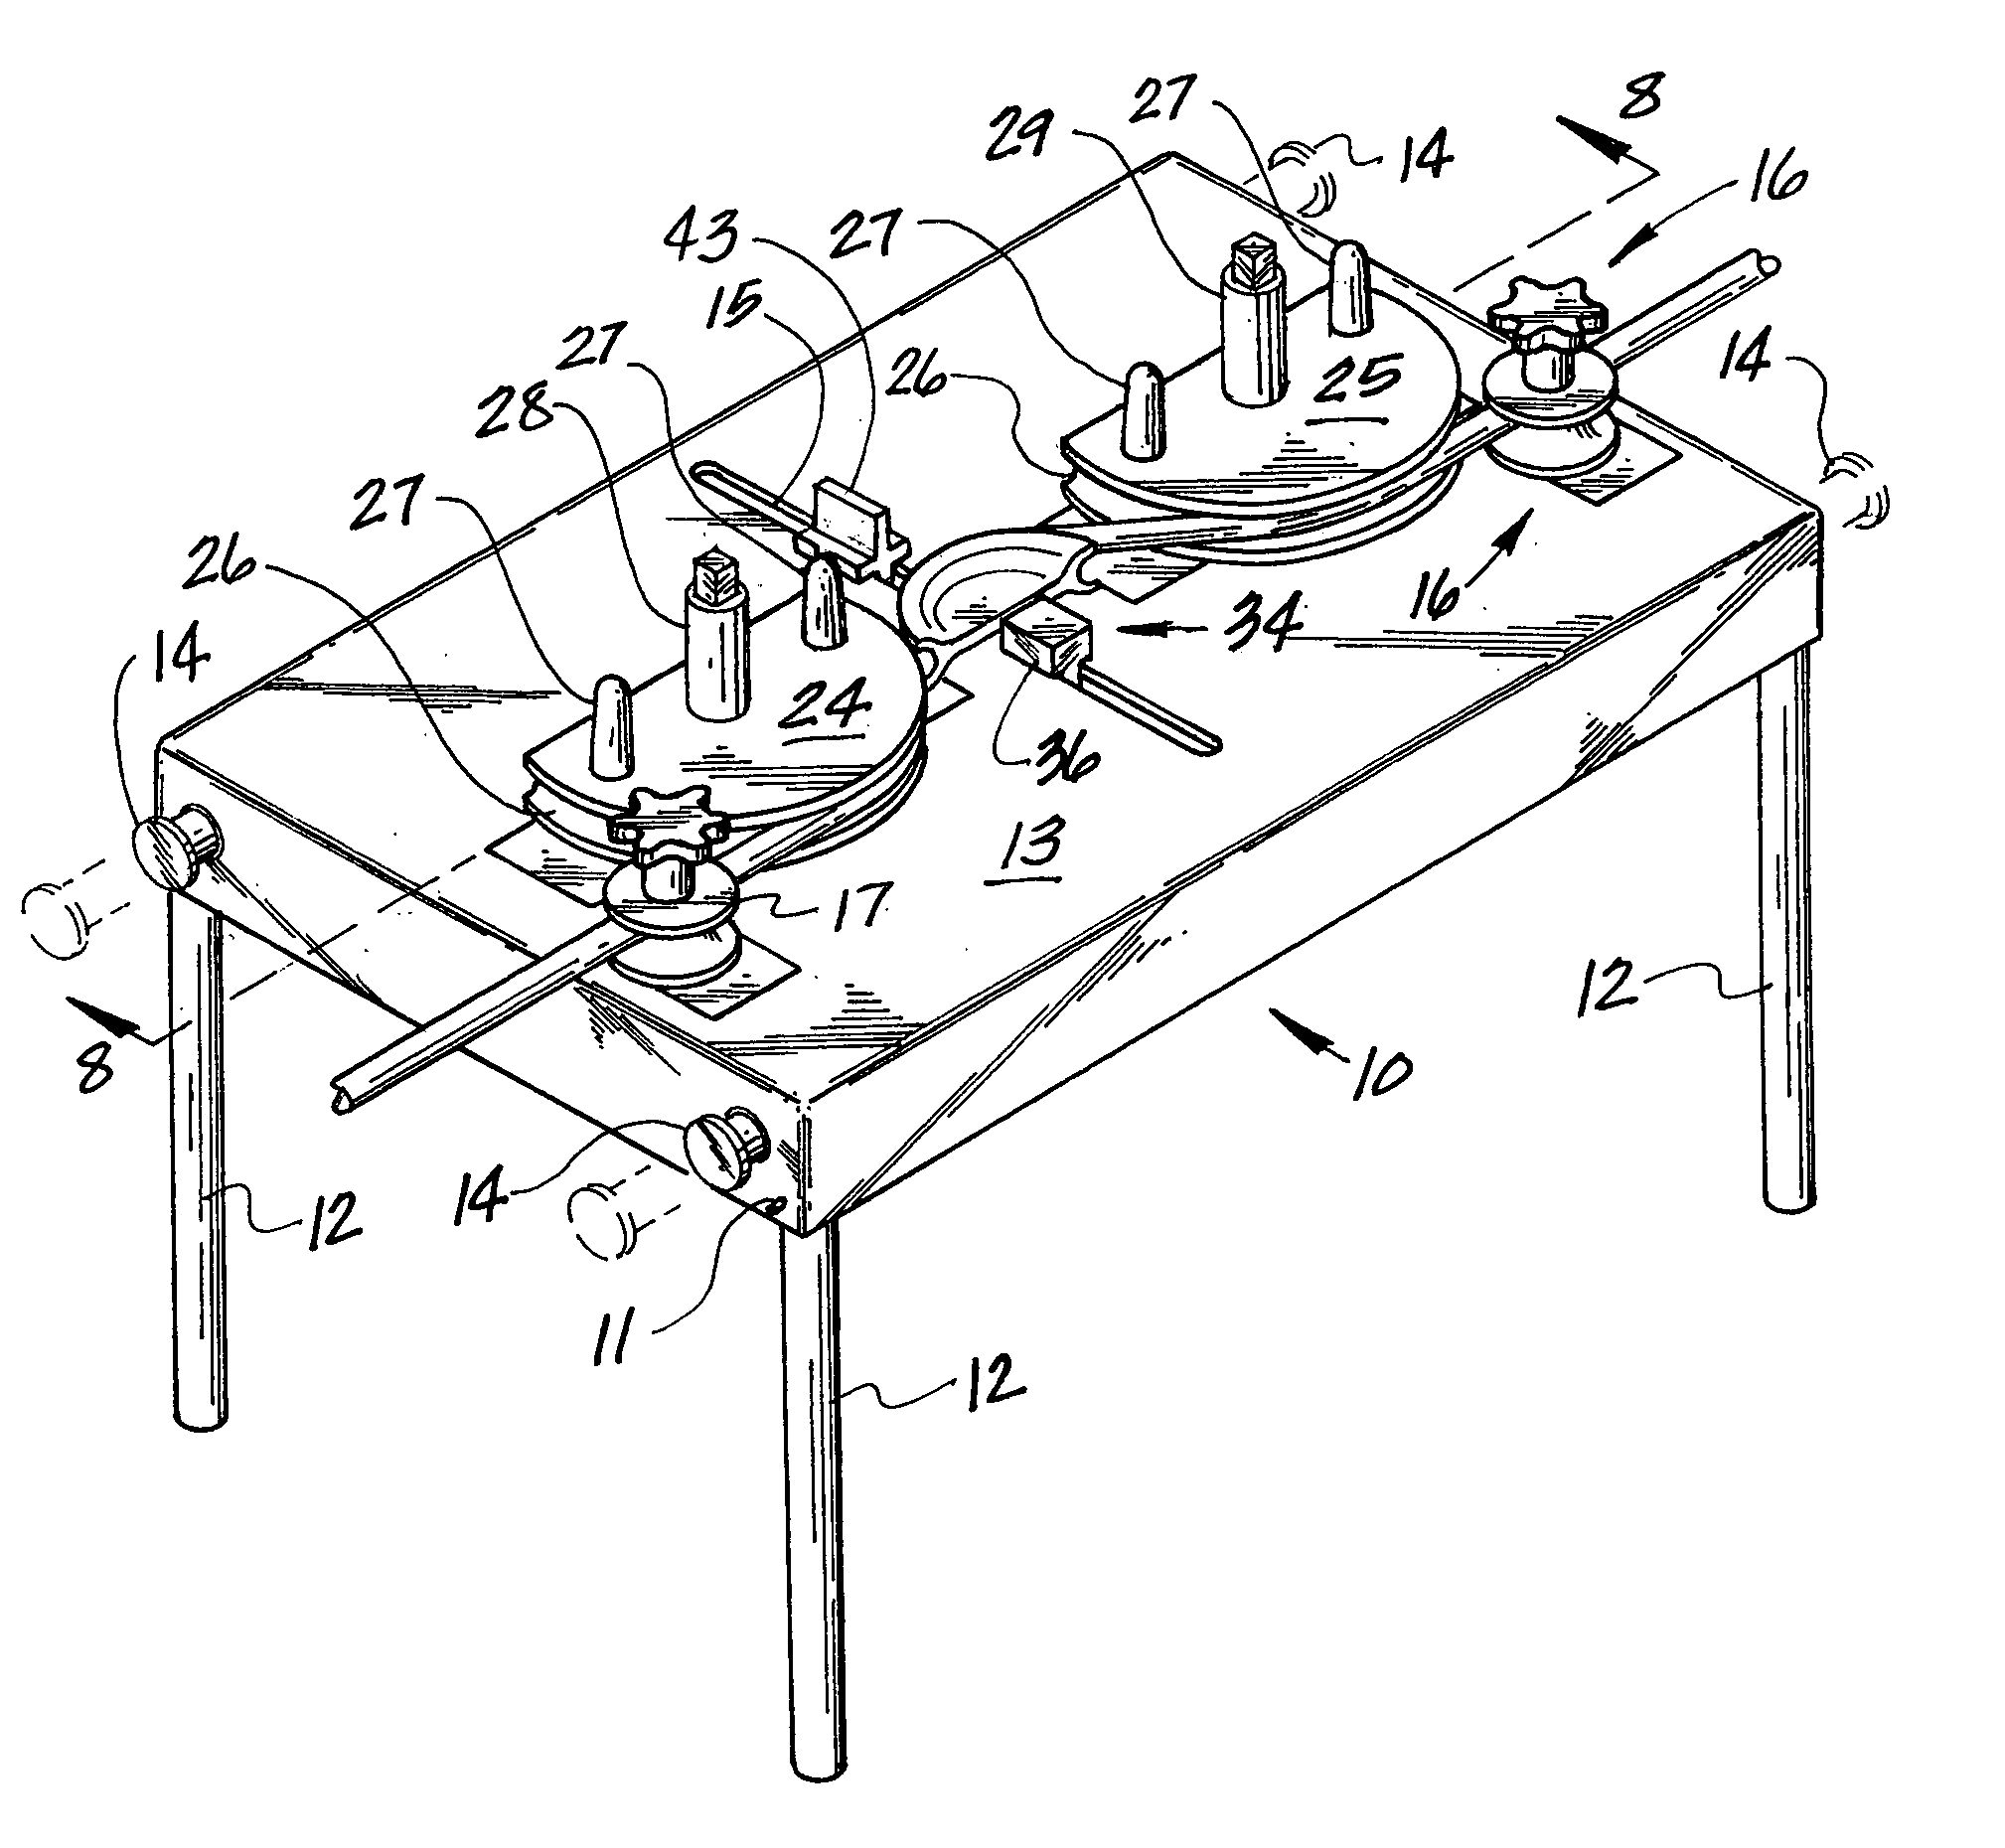 Here Is A Sketch Of A Tube Bending Machine